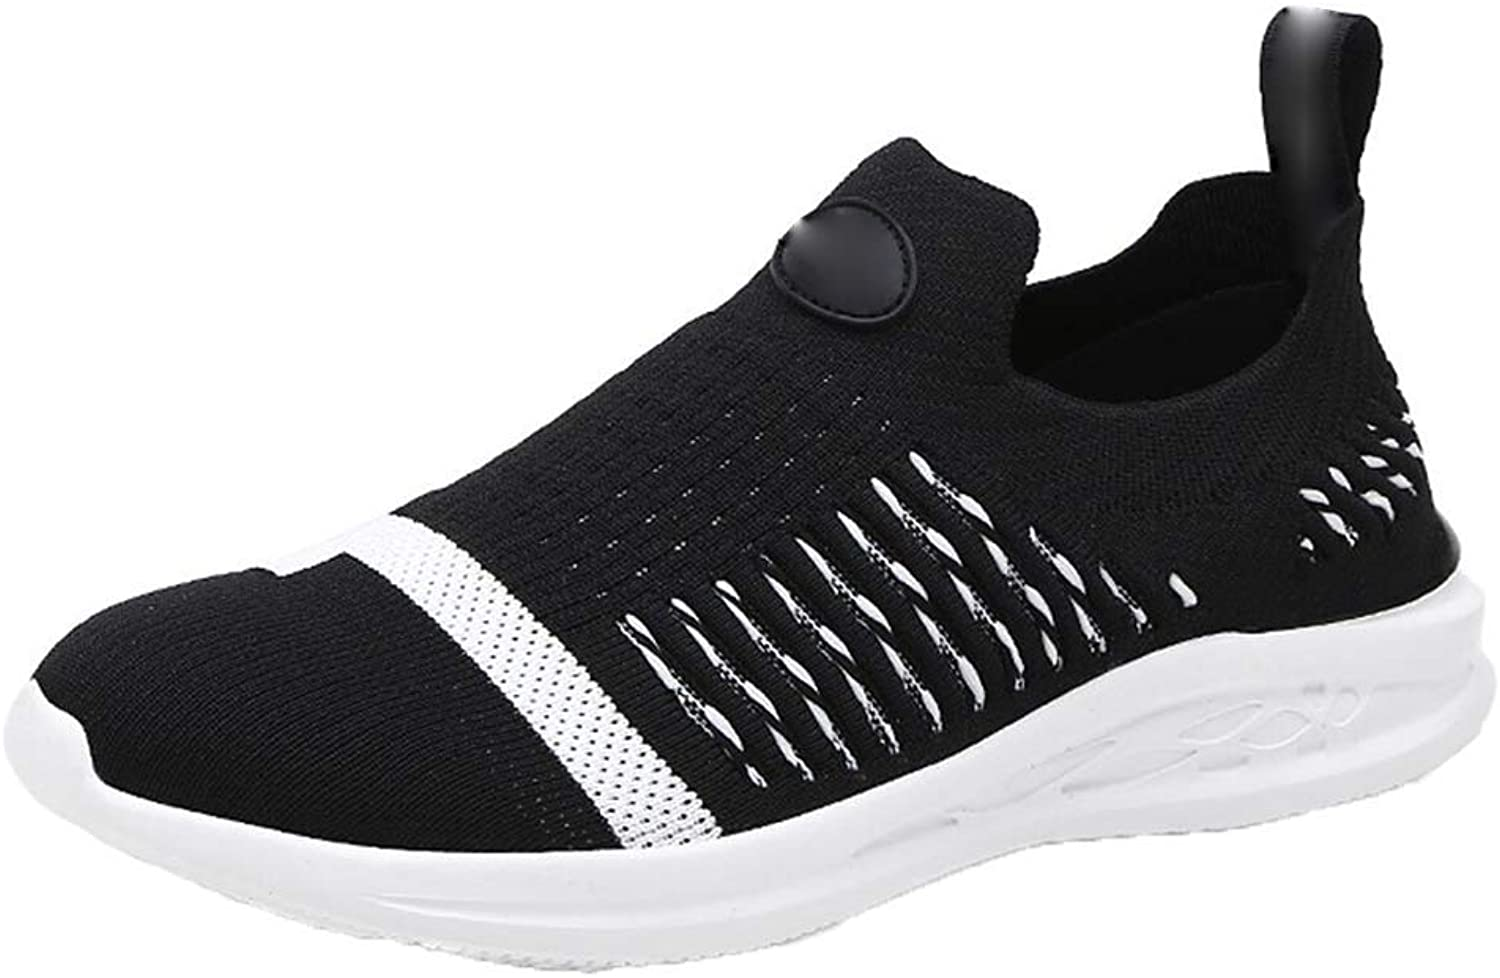 Outdoor Sneakers for Mens Men's Running shoes Outdoor Casual Wild Net Fashion Low Help Light Running shoes (color   Black, Size   41)